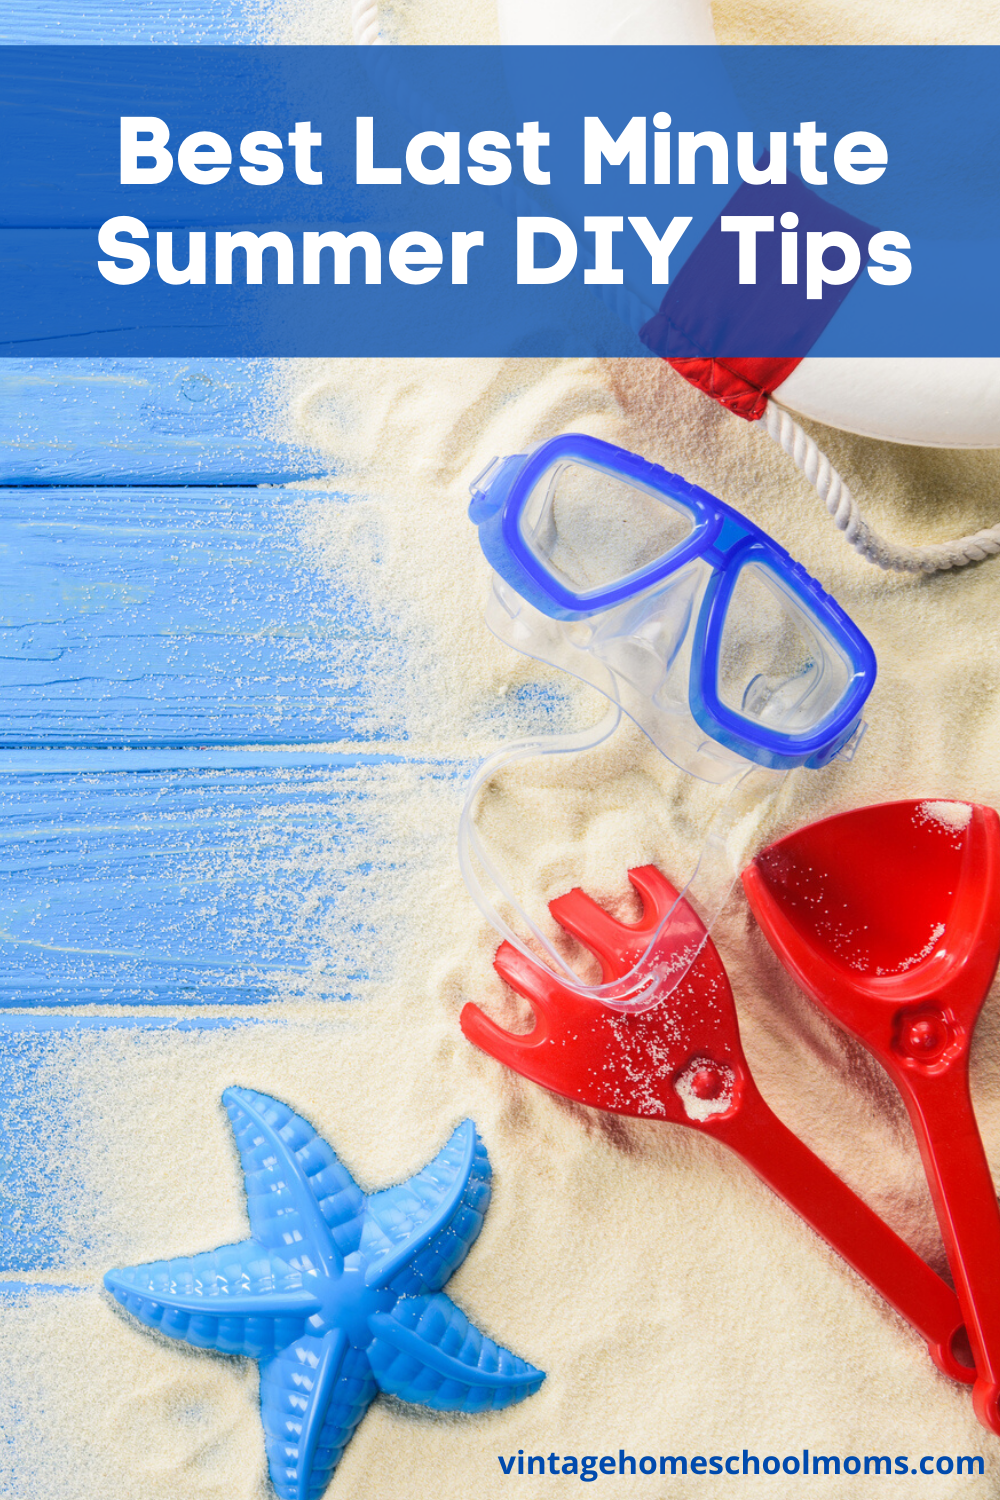 Best Last Minute Summer | What are the best last minute summer DIY Tips? In this episode of Vintage Homeschool Moms